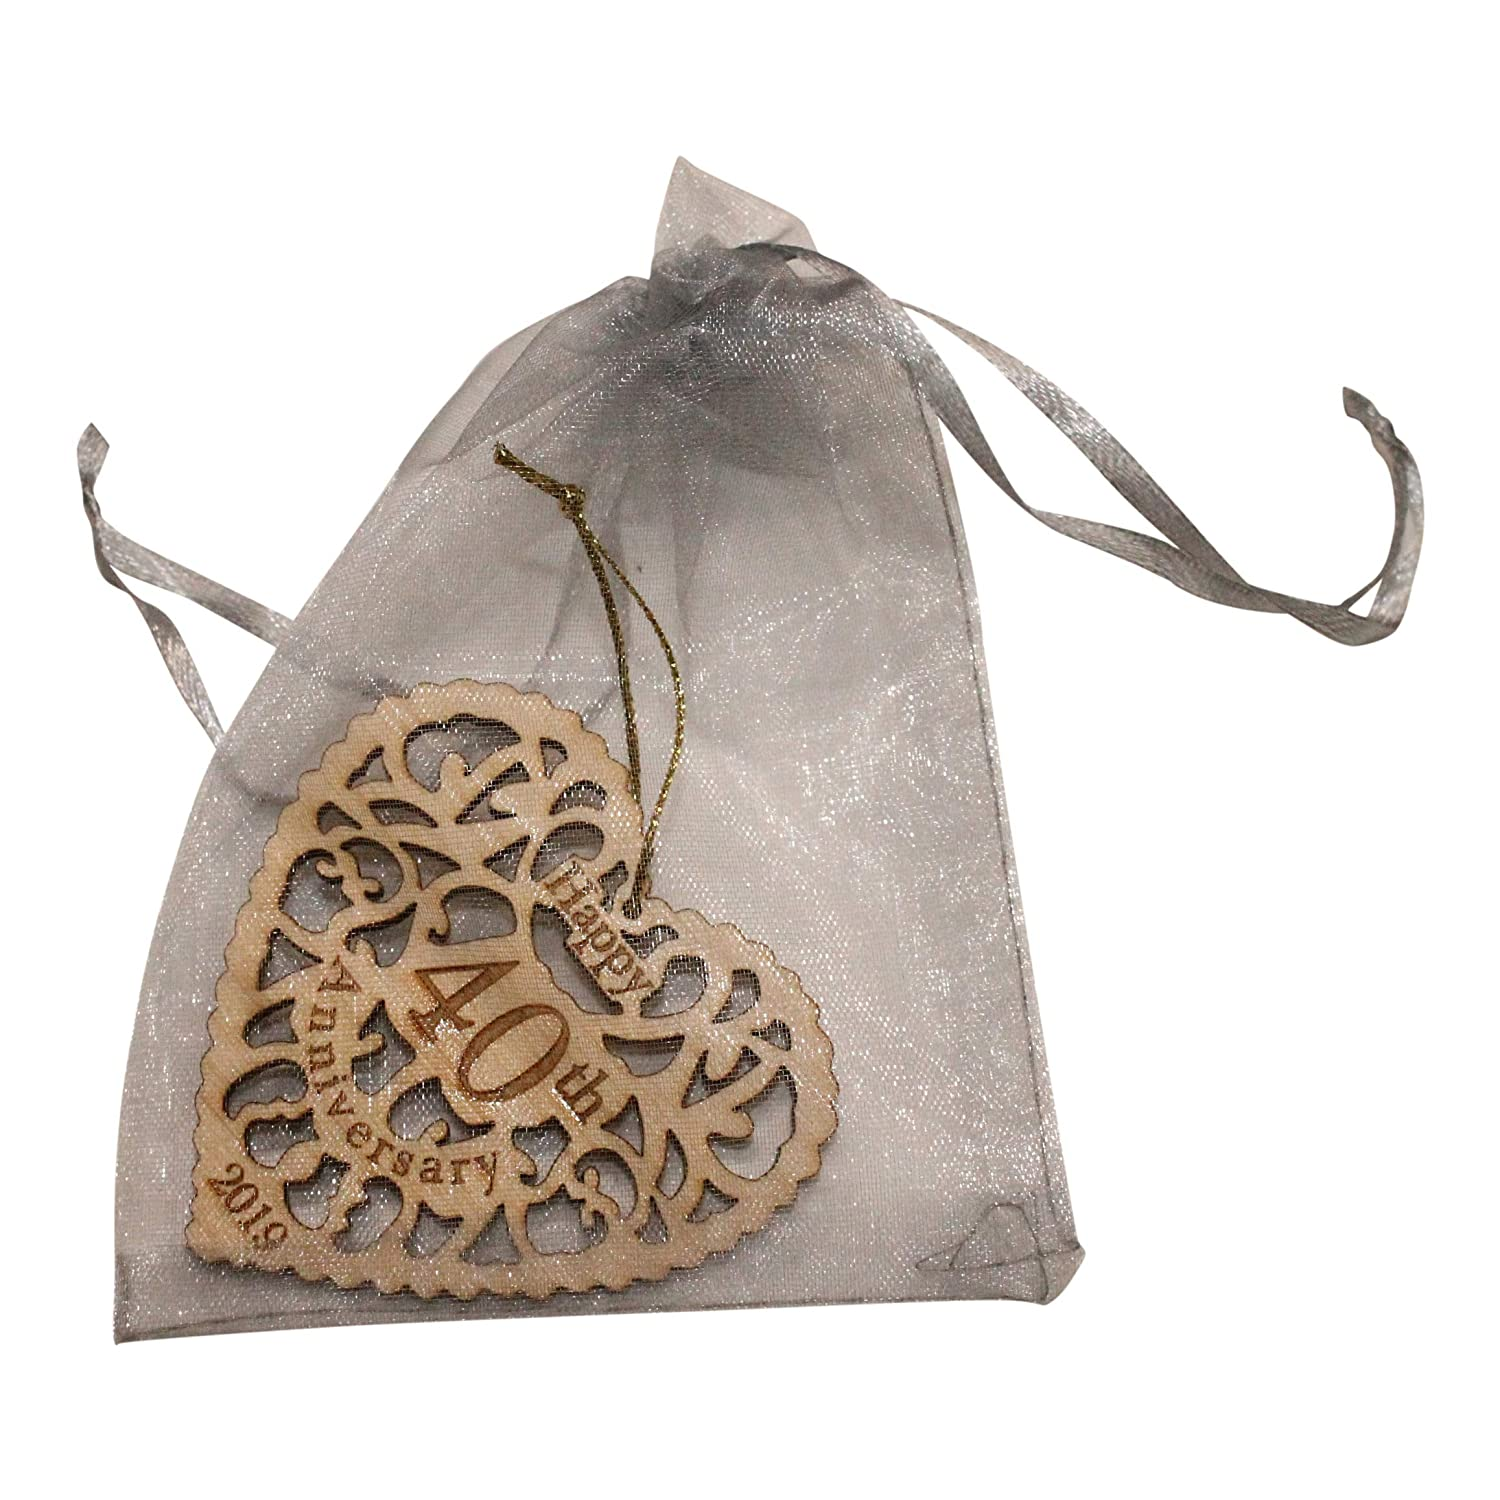 Twisted Anchor Trading Co 40th Anniversary Ornament 2019 Heart Shaped Happy Anniversary Ornament Beautiful Laser Cut Wood Detail Comes In A Pretty Organza Gift Bag So It S Ready To Give